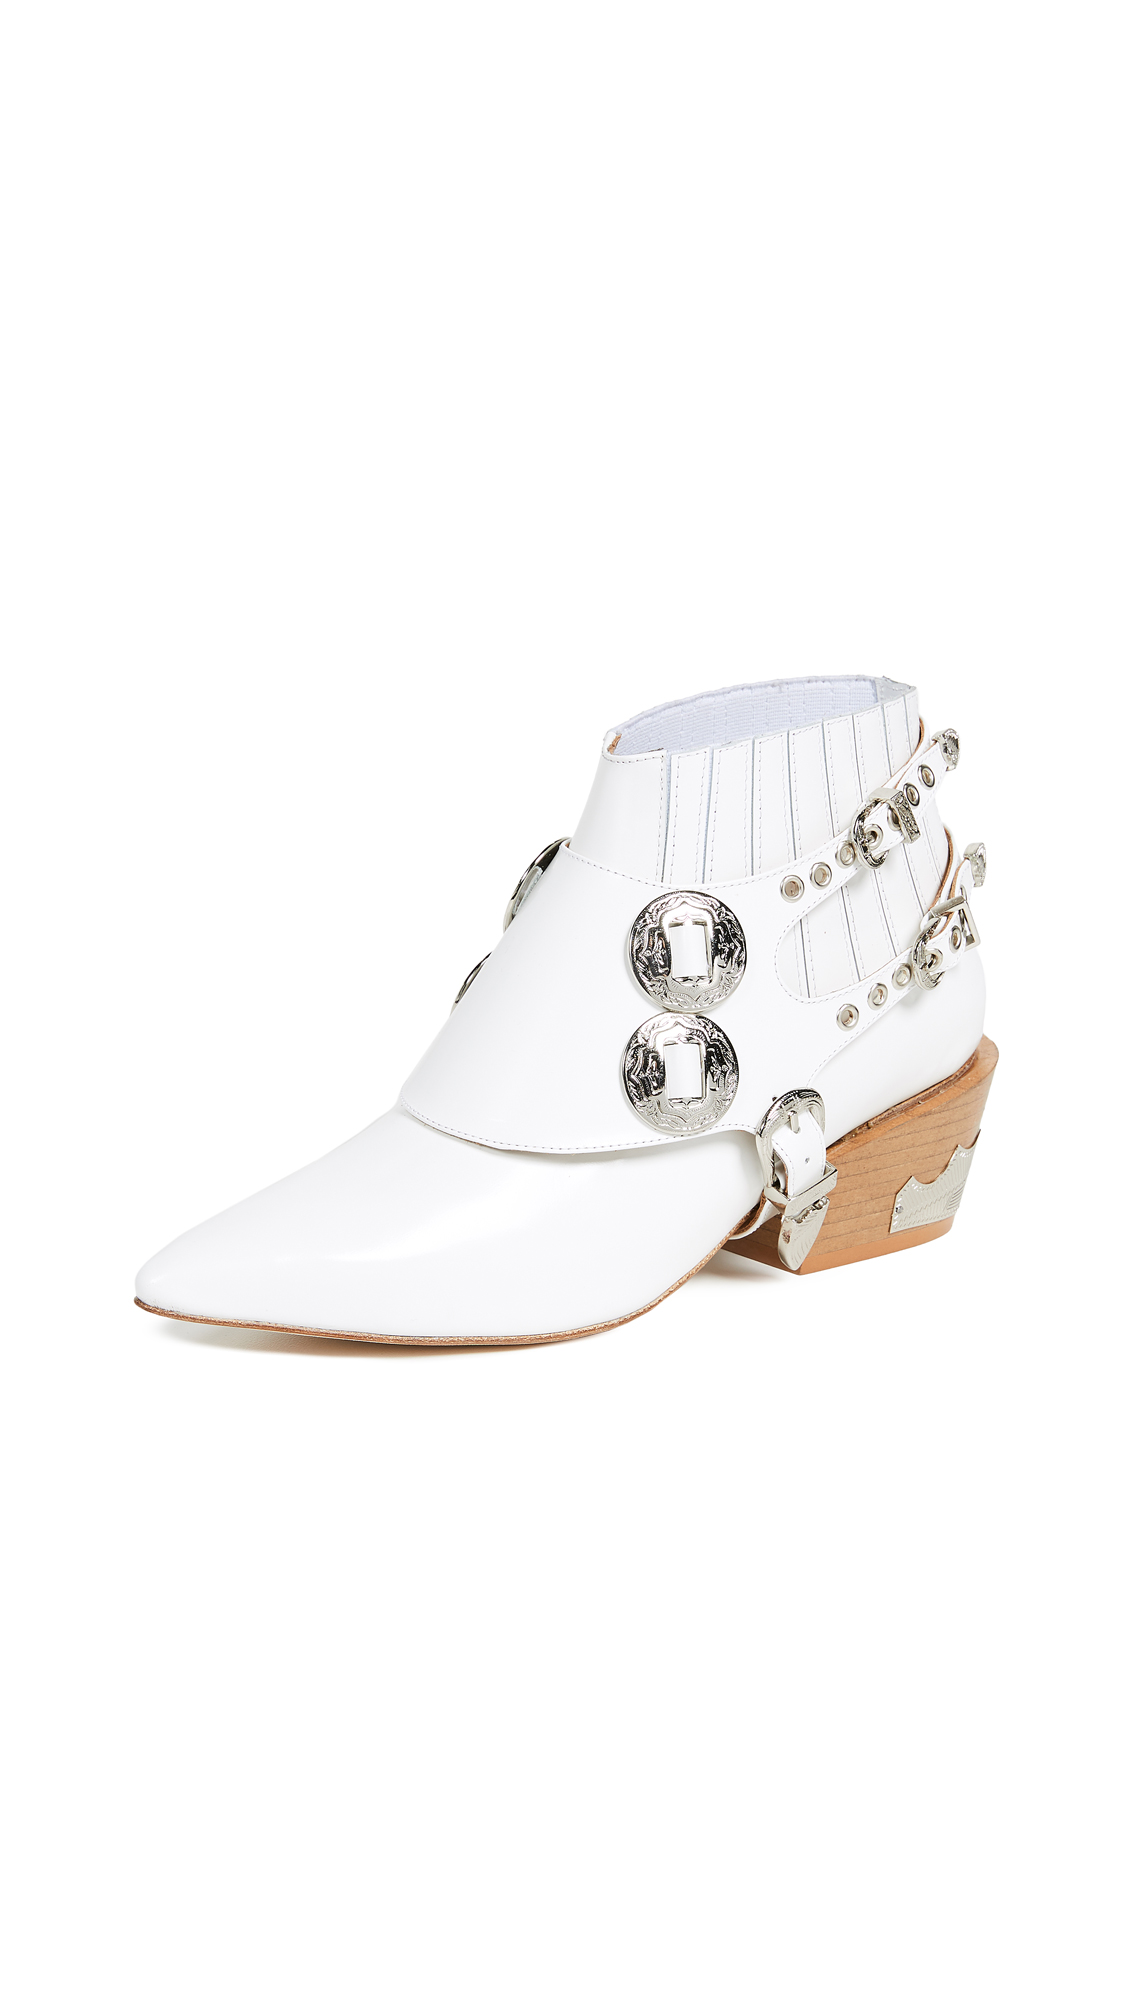 Toga Pulla Harness Ankle Boots - White